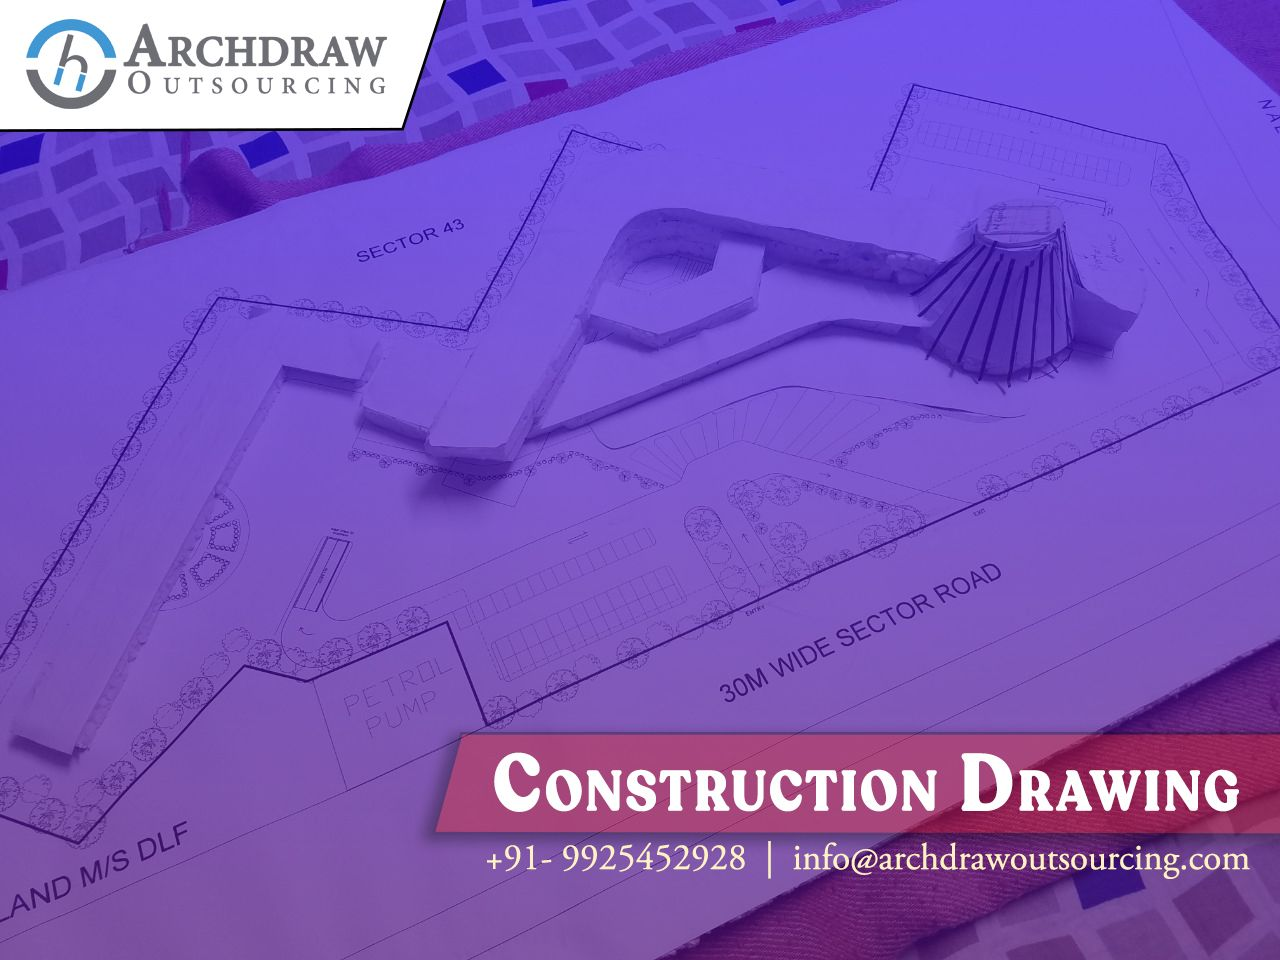 Archdraw Outsourcing Provides Accuracy Construction Drawing Services For The Construction Industry Ho Construction Drawings Construction Home Building Design